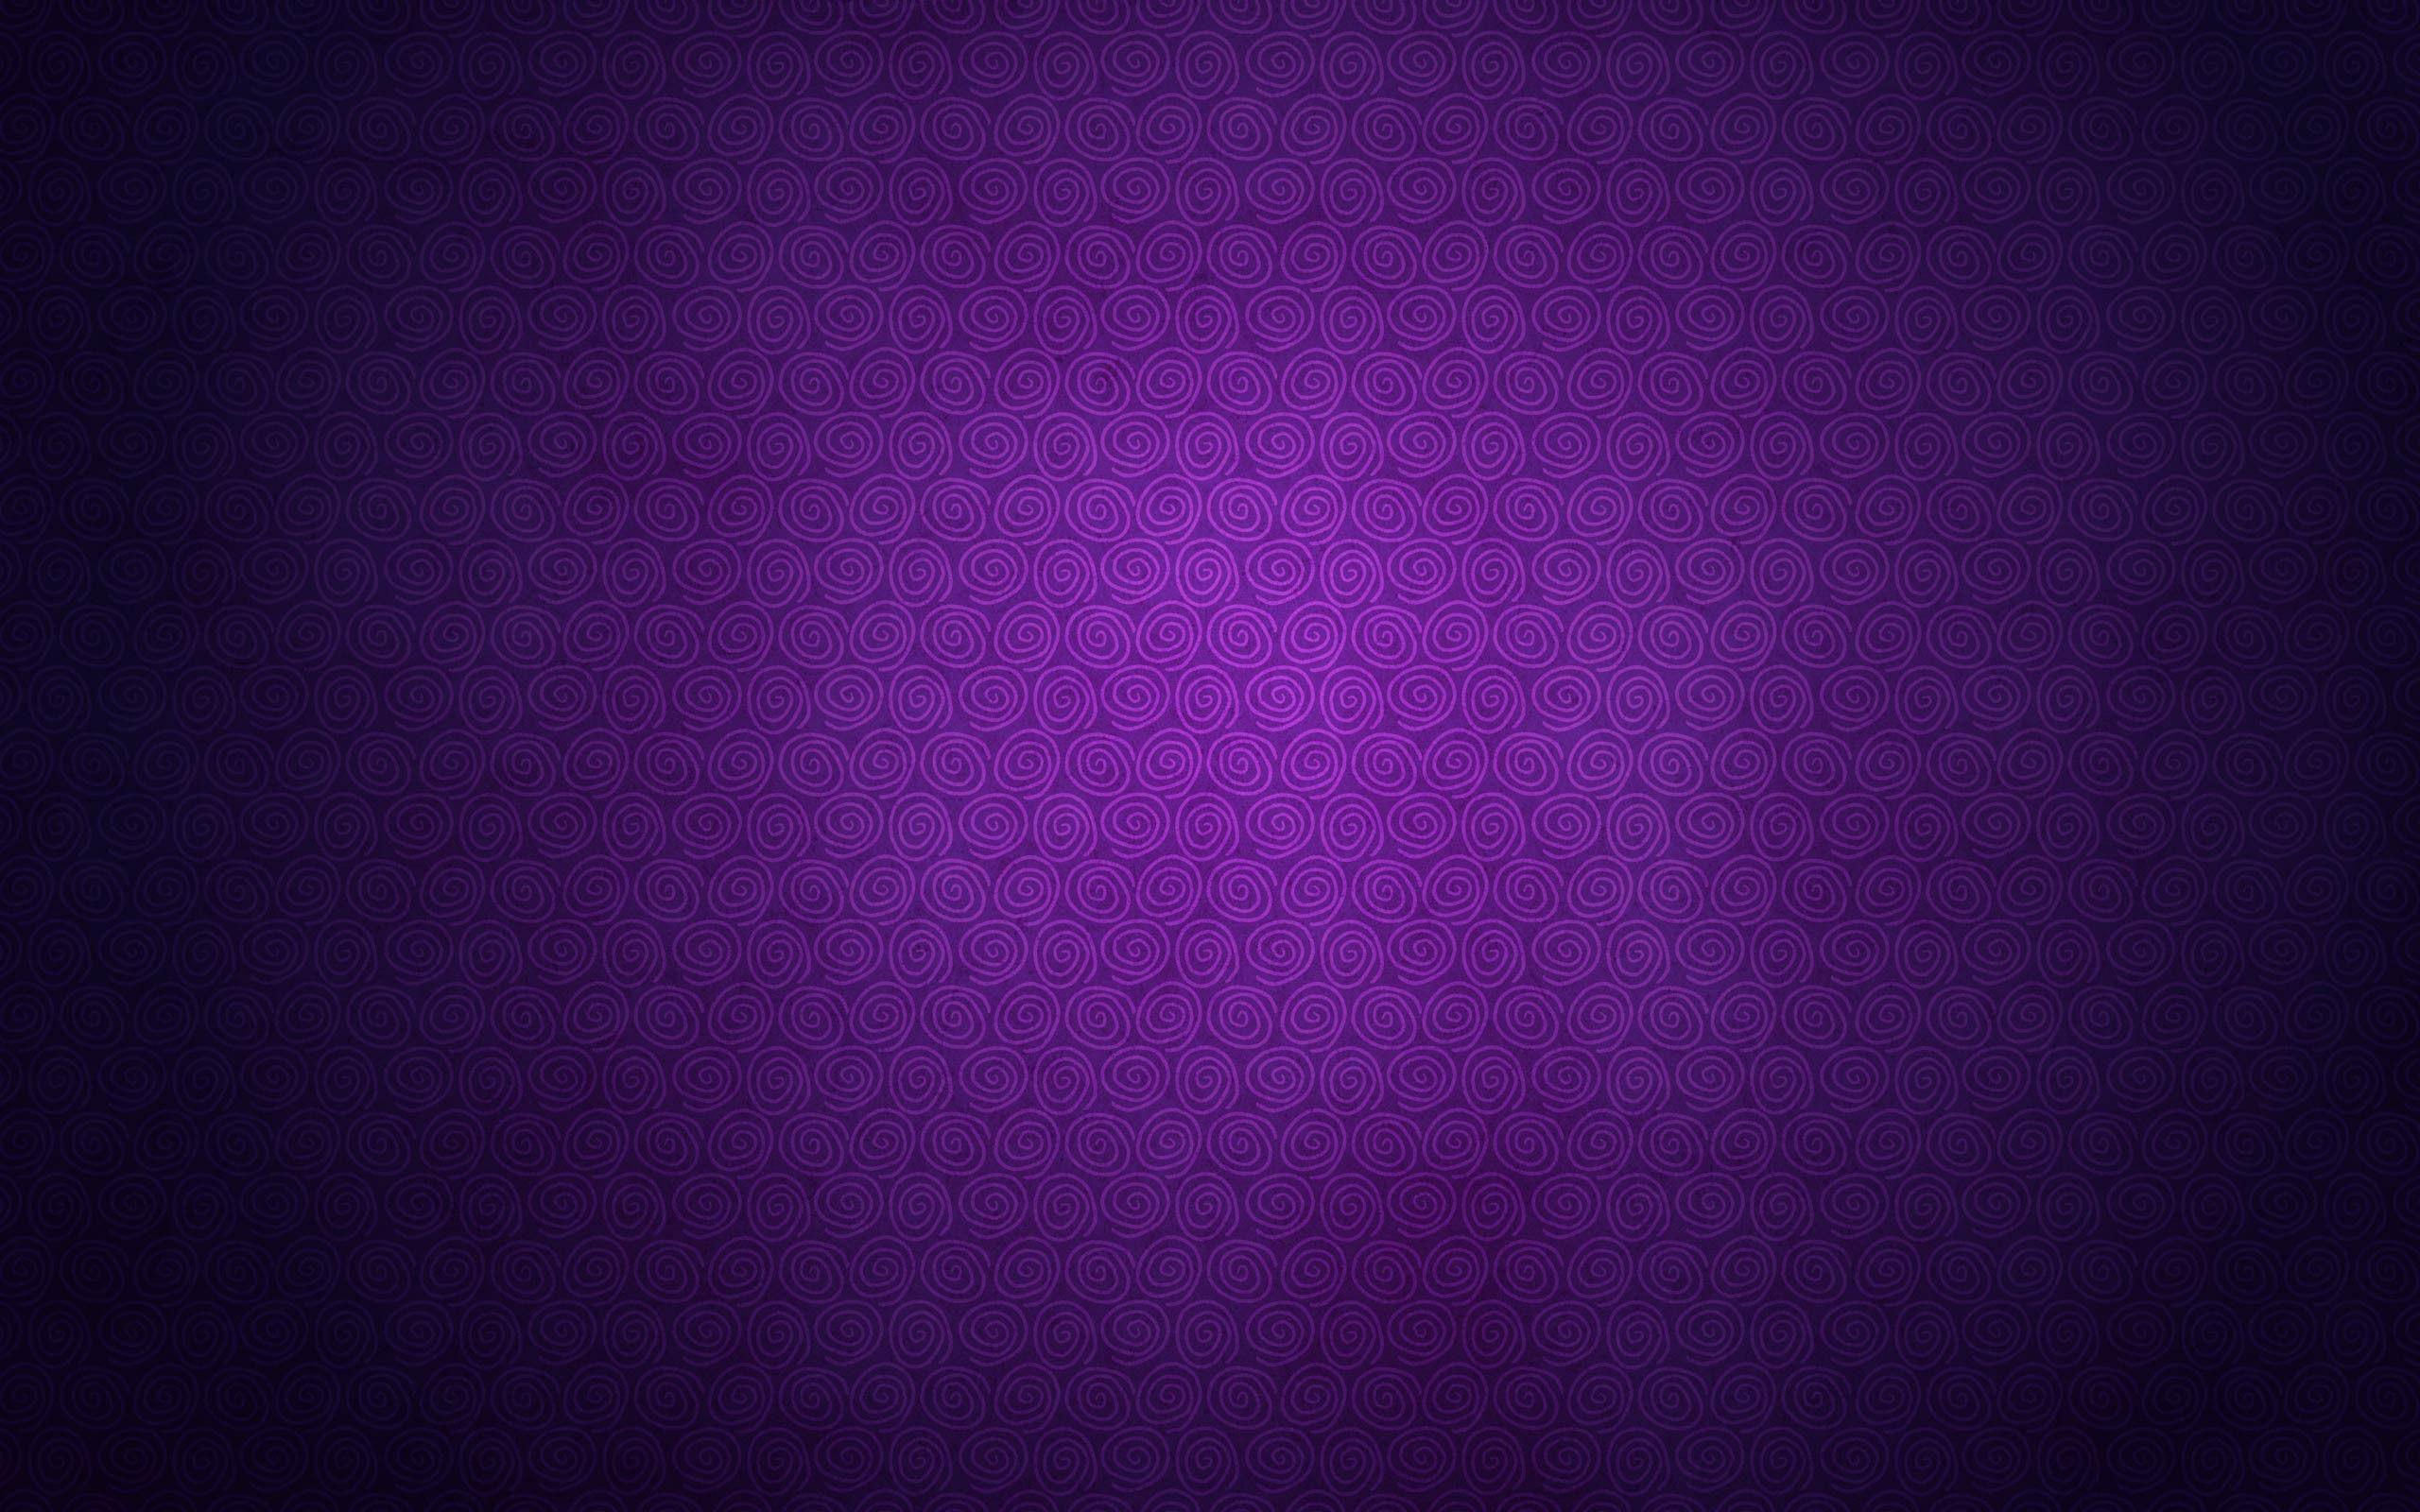 Dark Purple Wallpapers - Full HD wallpaper search